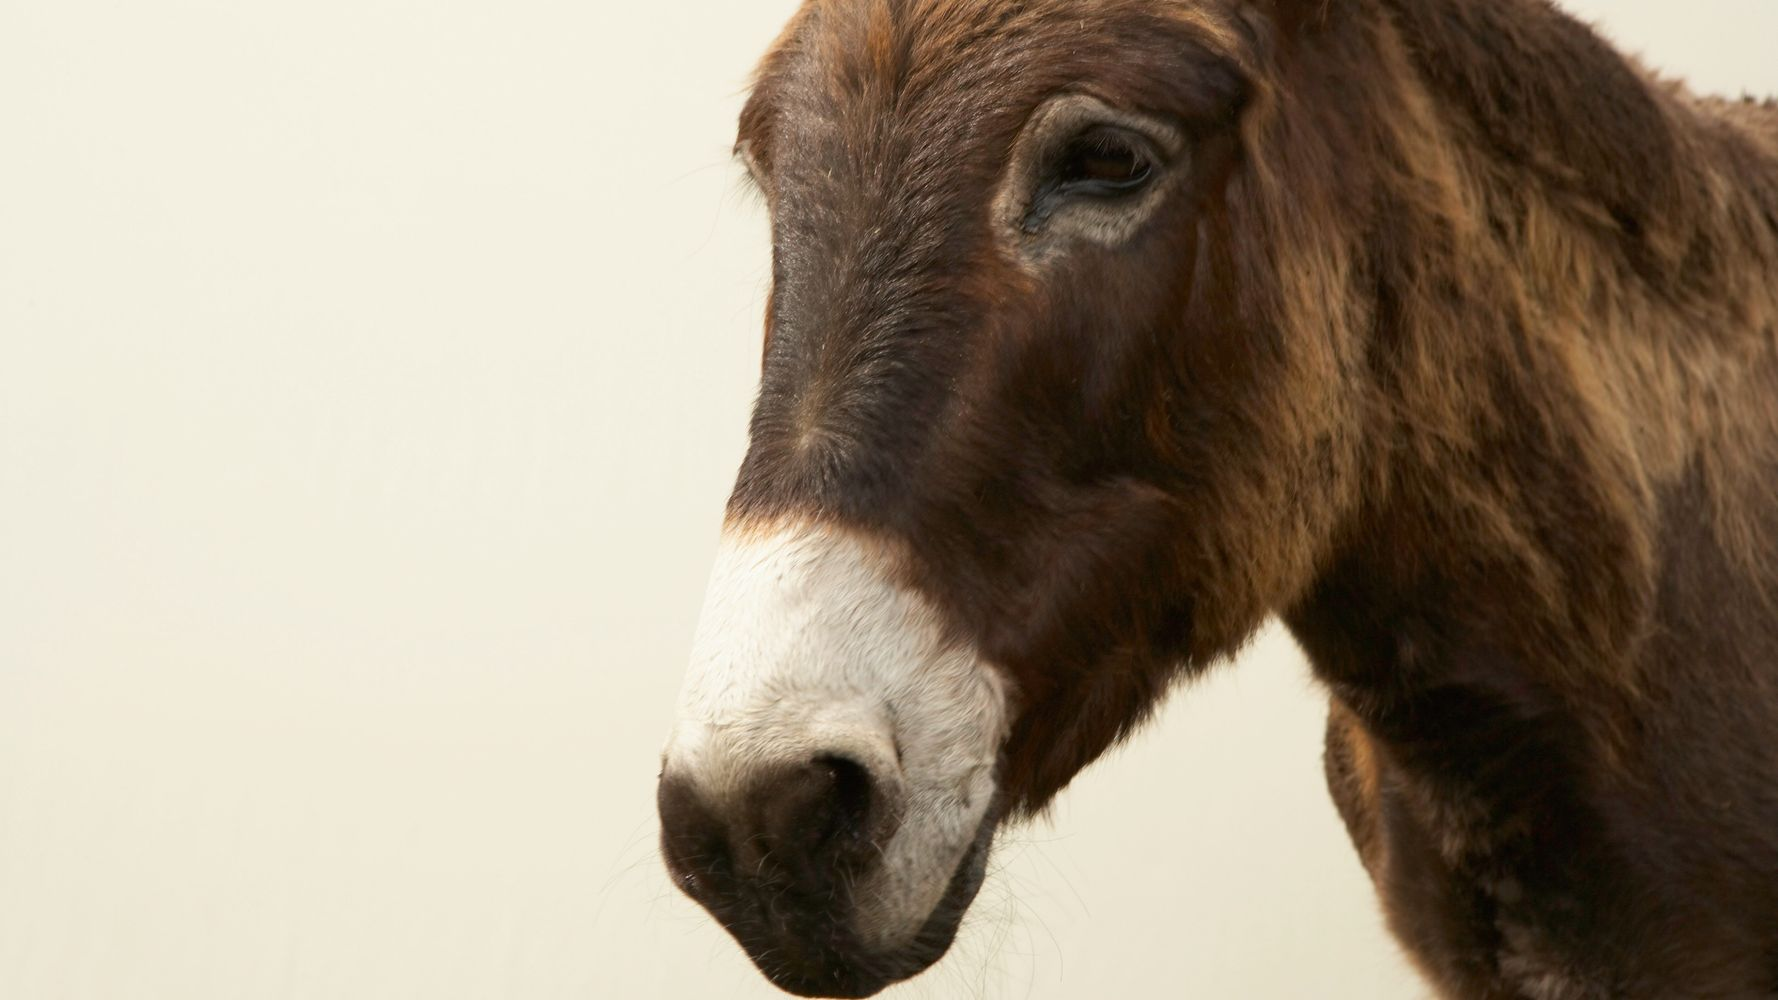 Donkey's Milk Might Sound Weird, But It Has Numerous Health